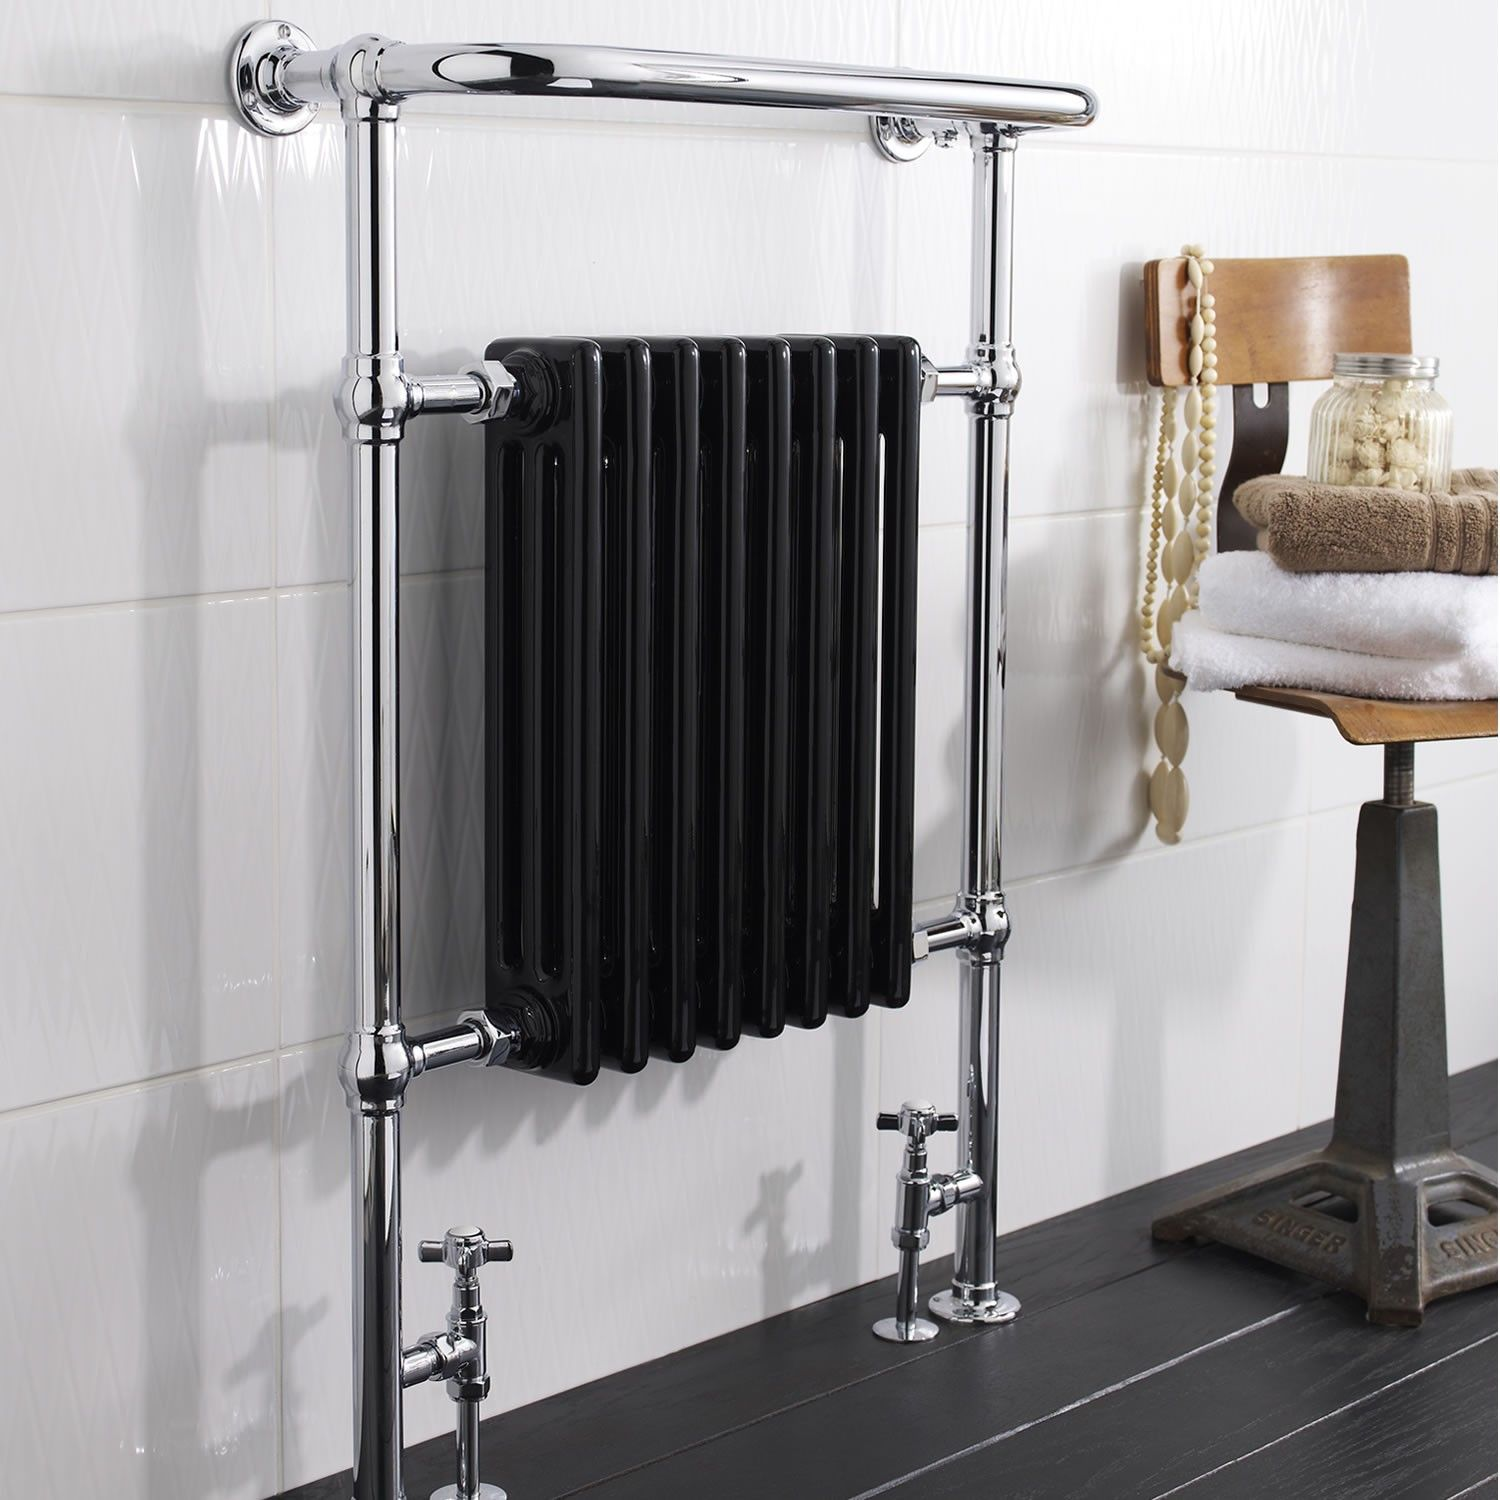 Marquis Black Traditional Hydronic Towel Warmer 26 X 37 Hydronic Towel Warmers Full Collection Hydroni Heated Towel Rail Towel Rail Traditional Radiators